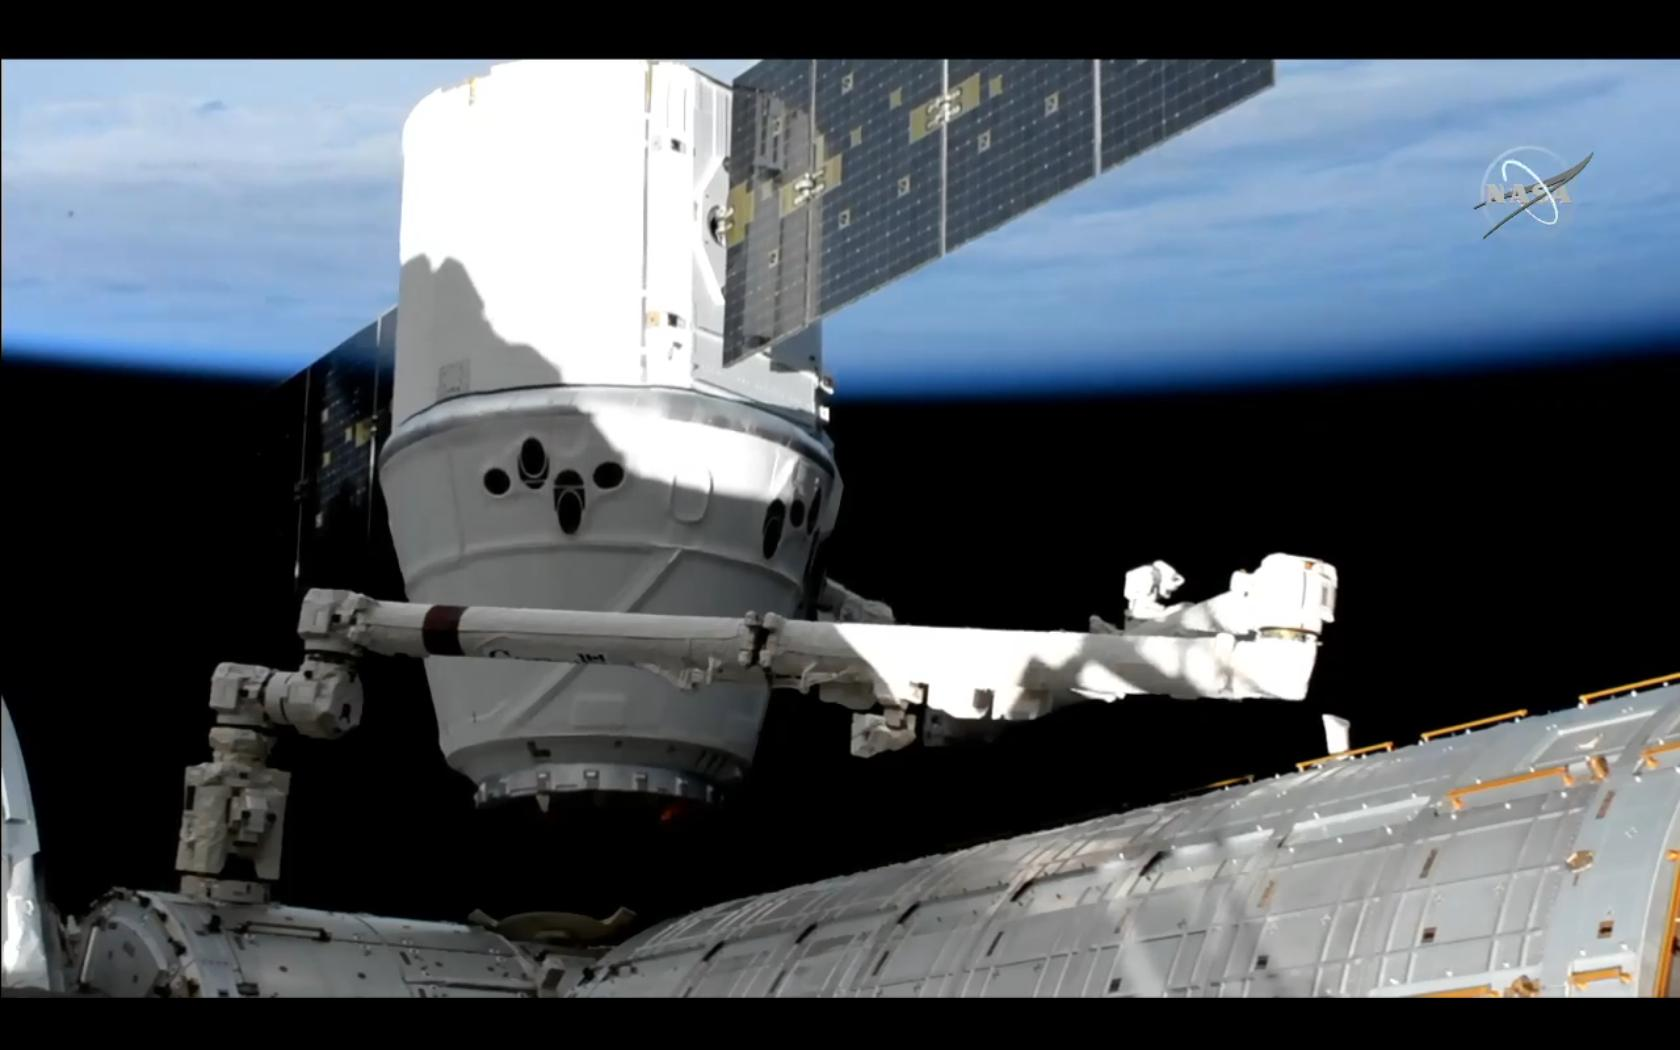 2019-6-may-dragon-arrives-iss.jpg